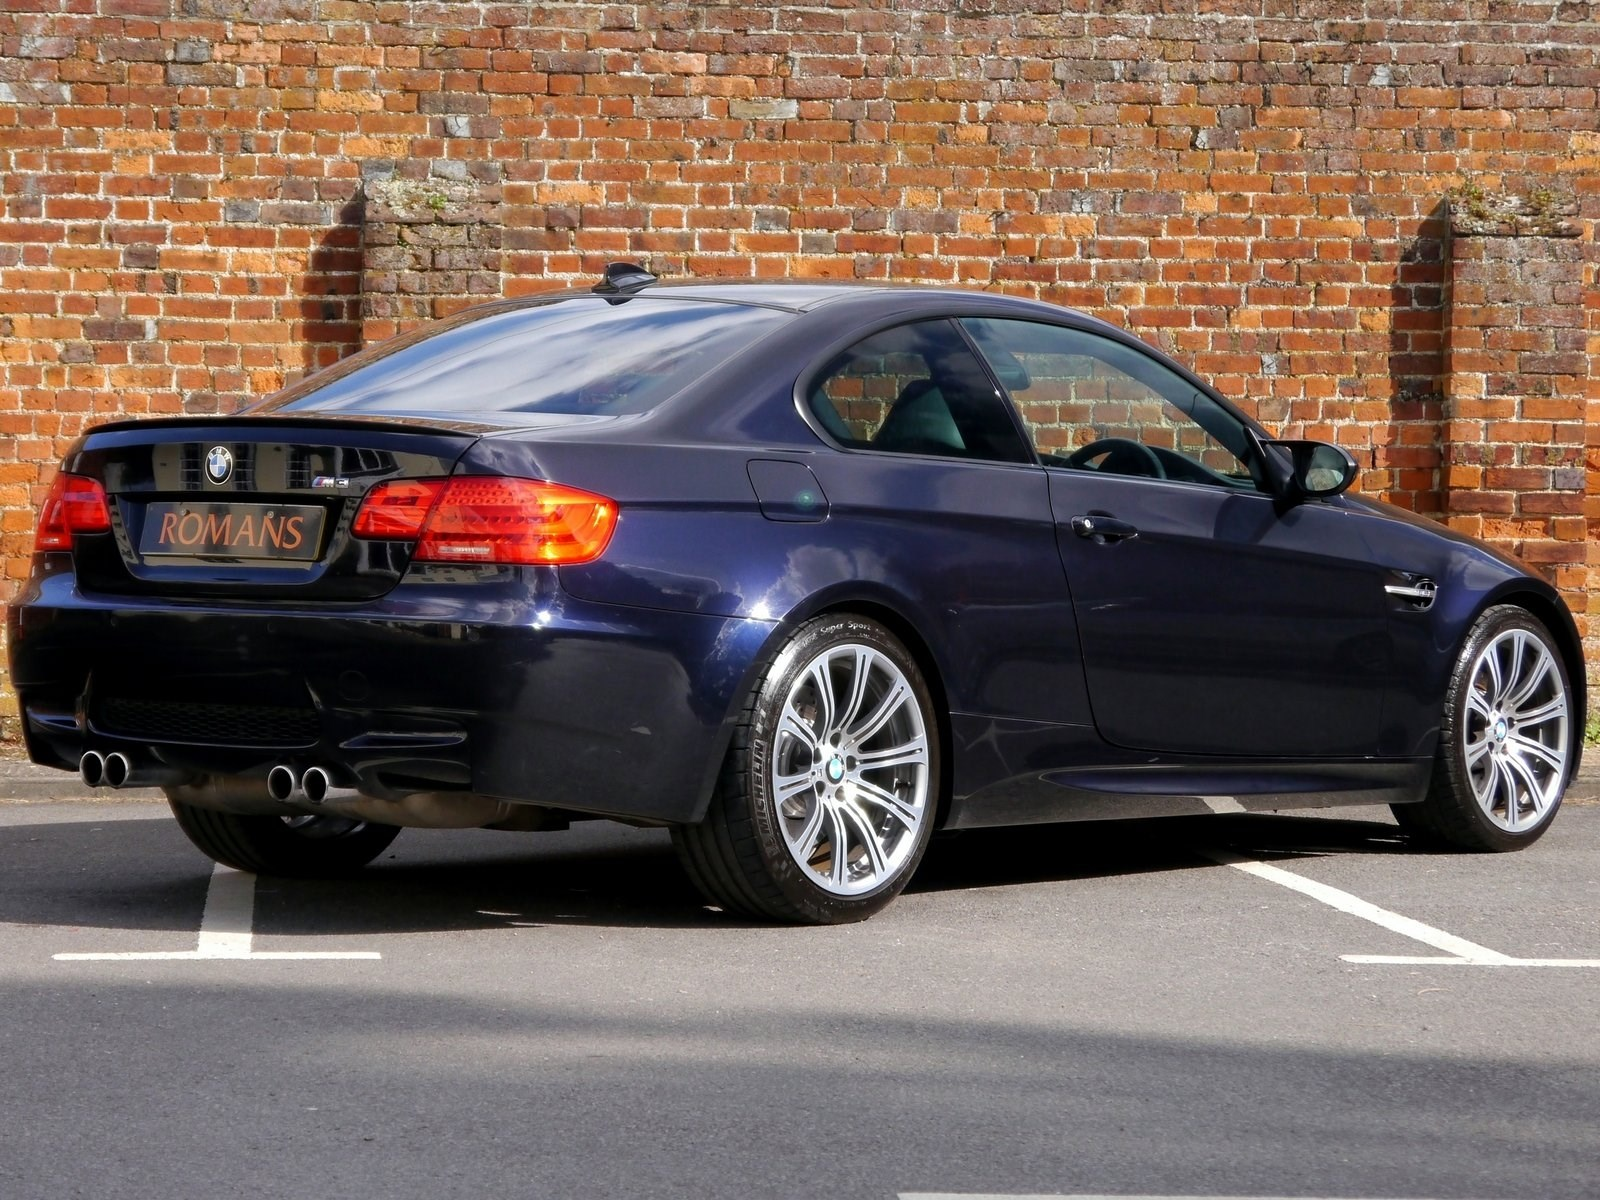 BMW M V Manual Sports Exhaust EDC For Sale - Manual sports cars